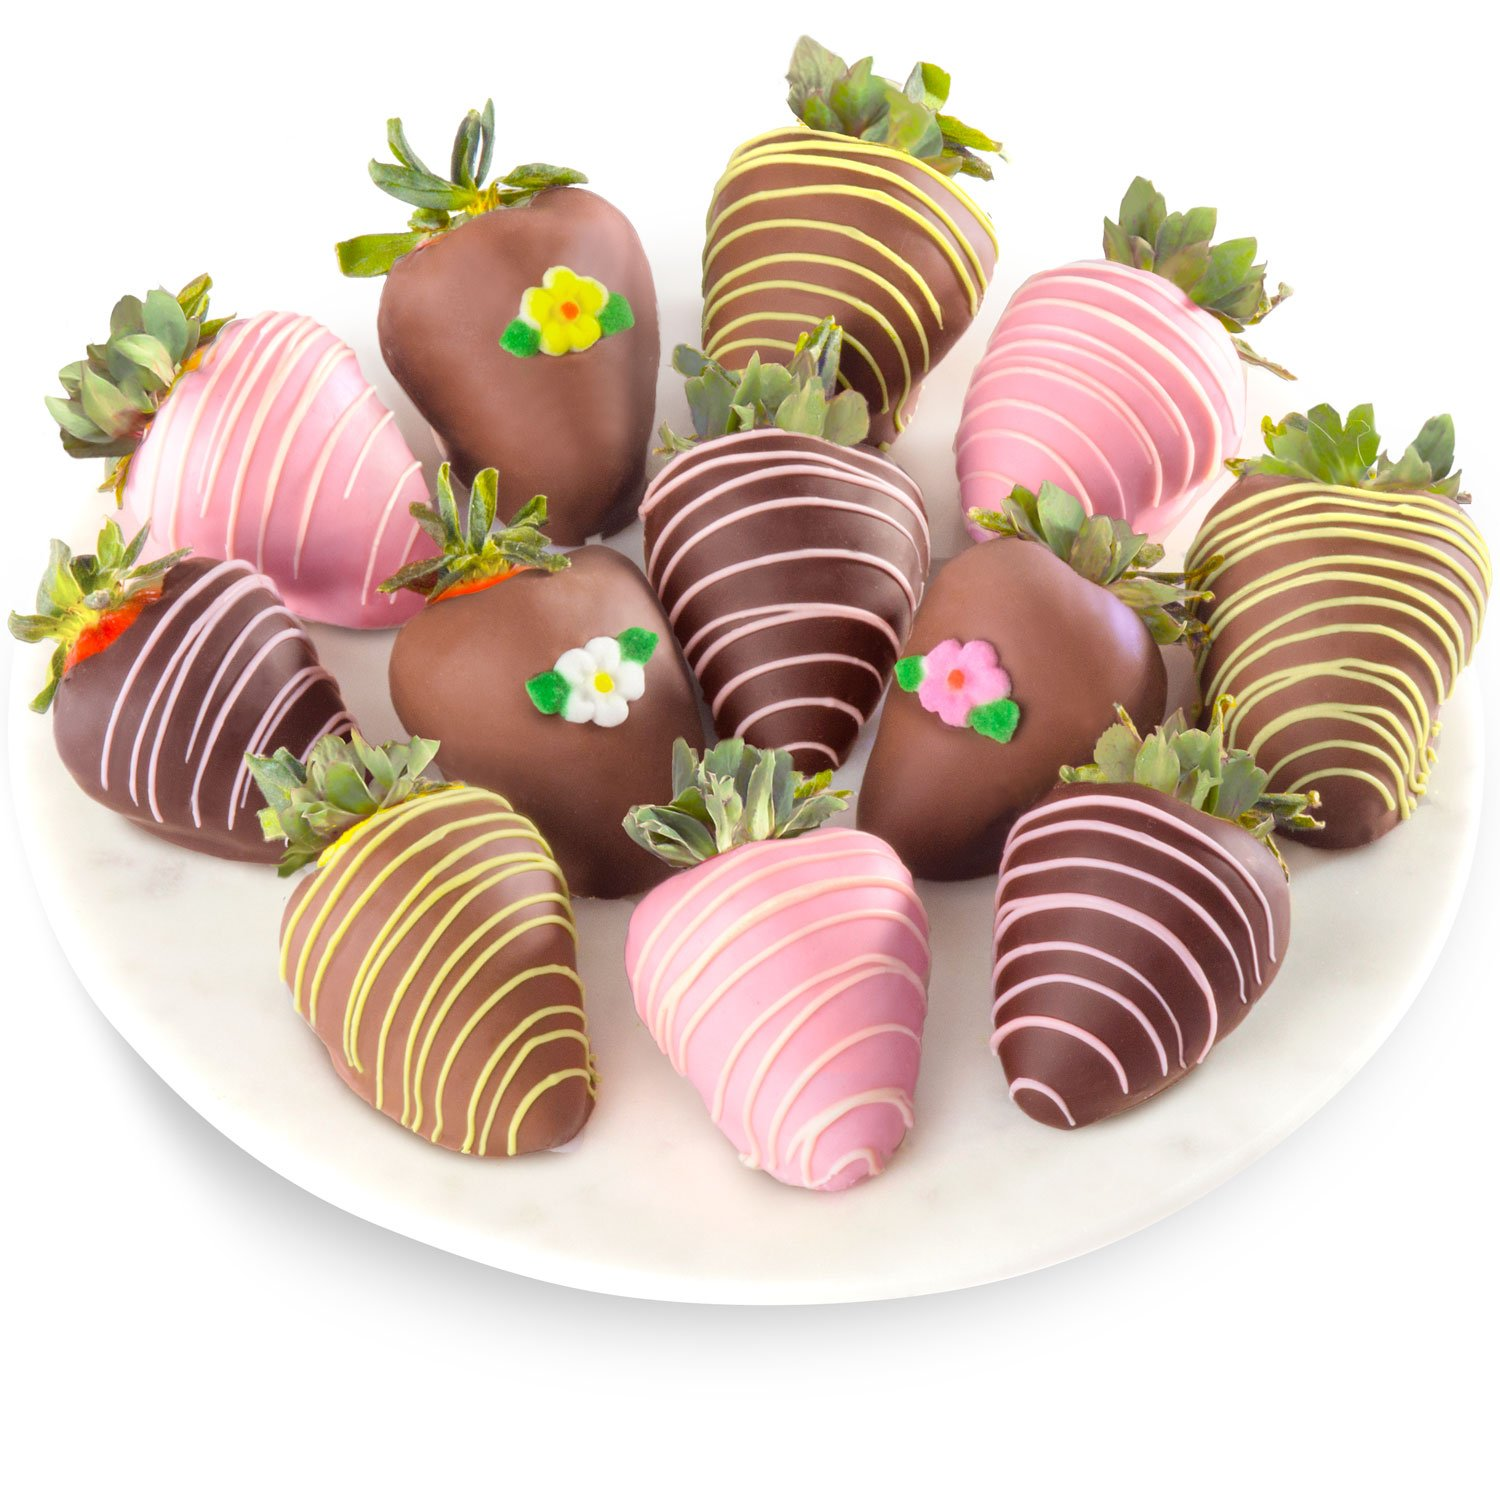 Golden State Fruit 12 Piece Sweet Summer Chocolate Covered Strawberries by Golden State Fruit (Image #1)